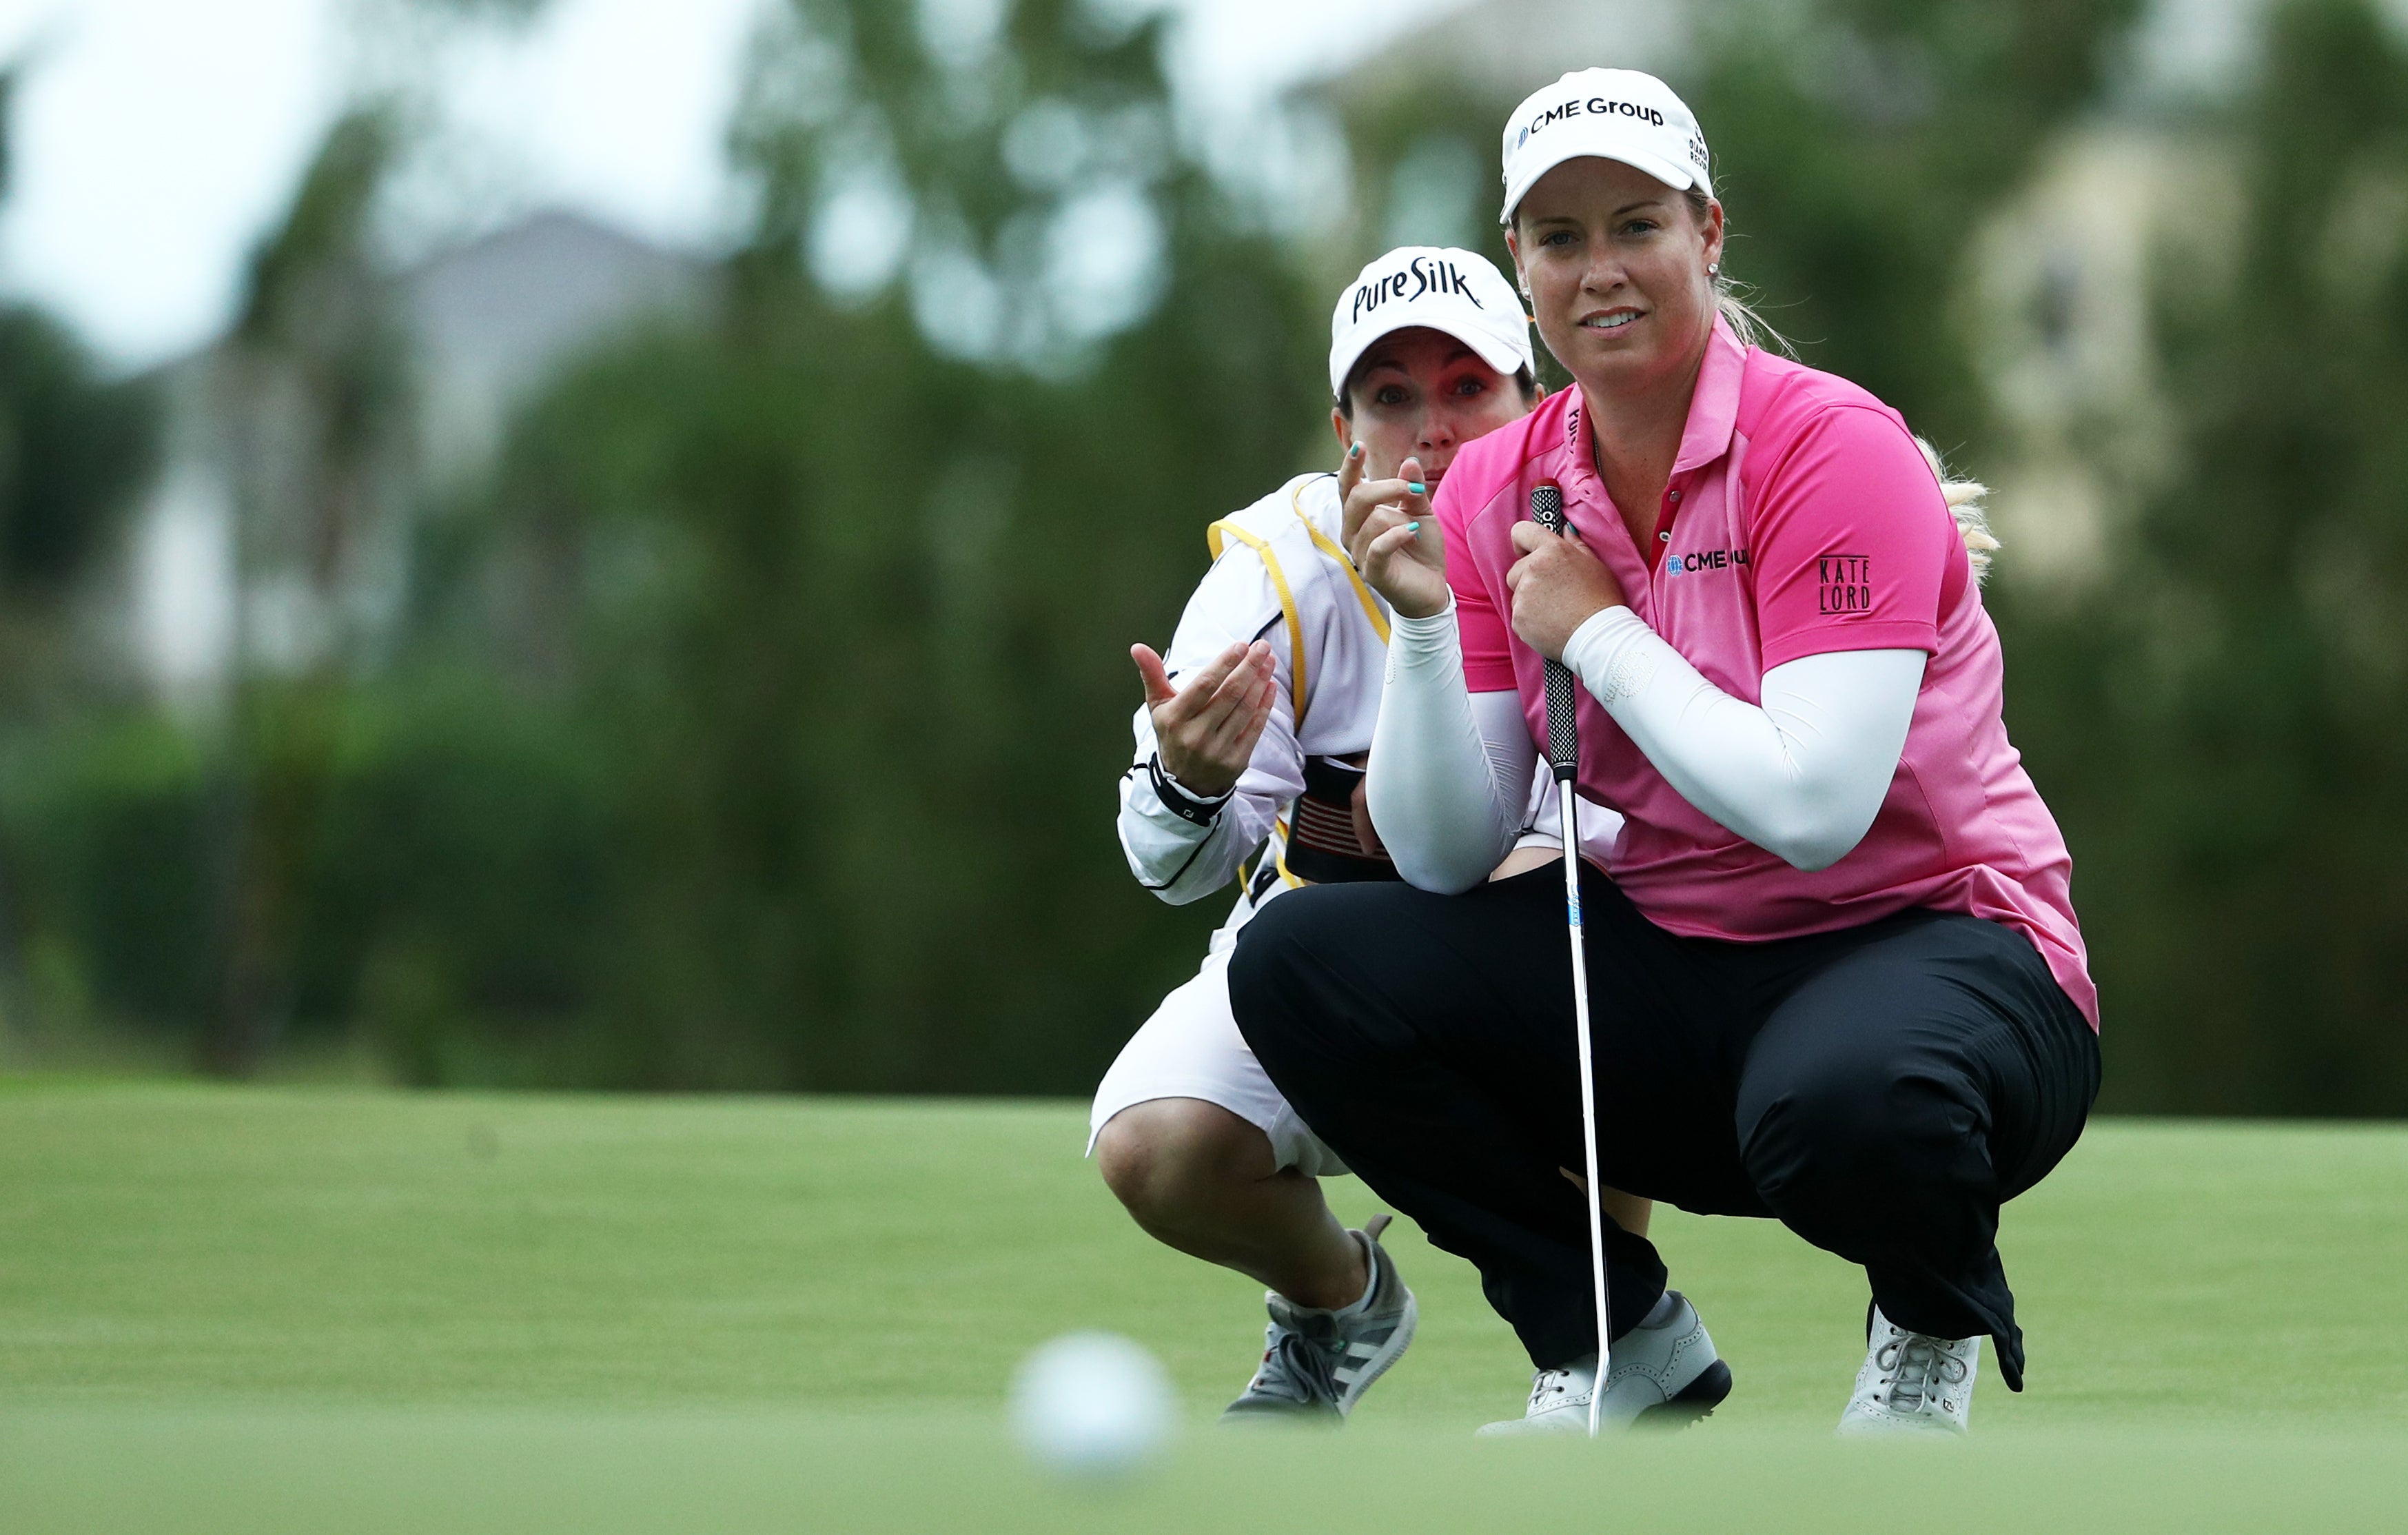 Brittany Lincicome stands by support of caddie alignment rule